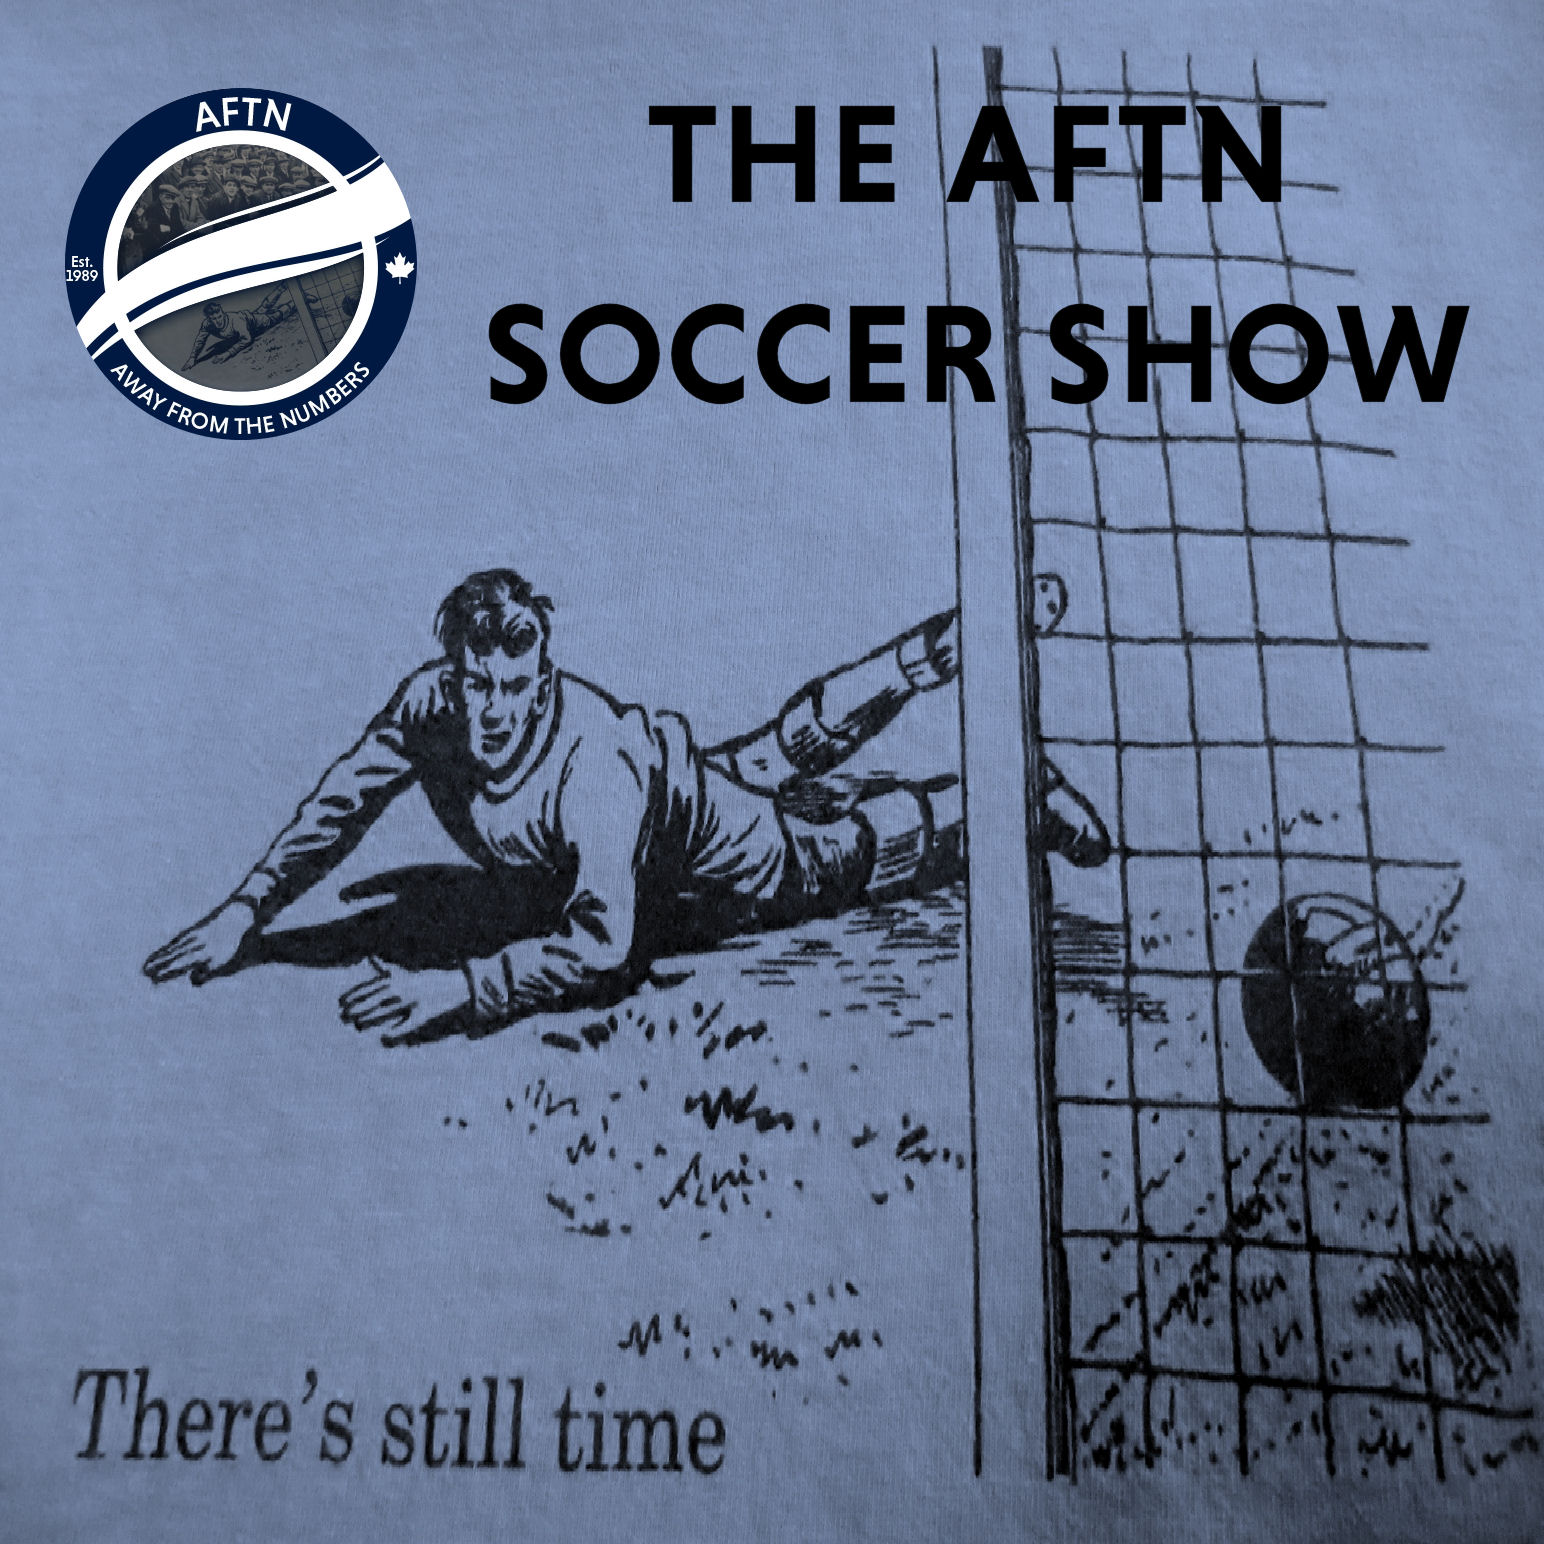 Episode 290 - The AFTN Soccer Show (A Storm In A V Cup - TFC postgame and Timbers preview show)